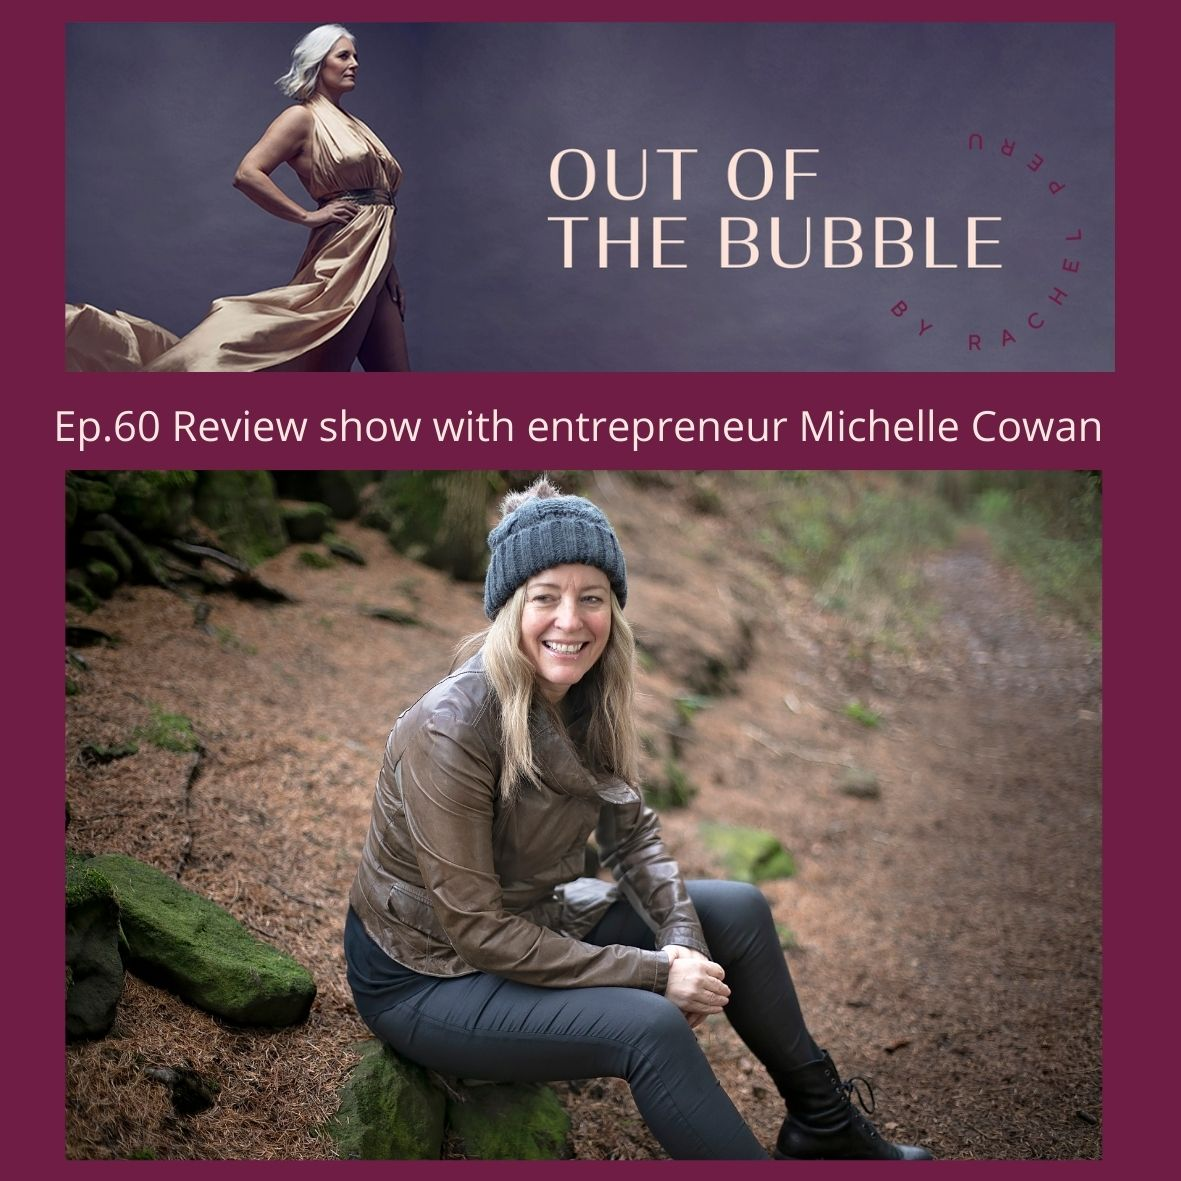 Ep.60- Out of the Bubble review show with entrepreneur Michelle Cowan, founder of Justo Software.